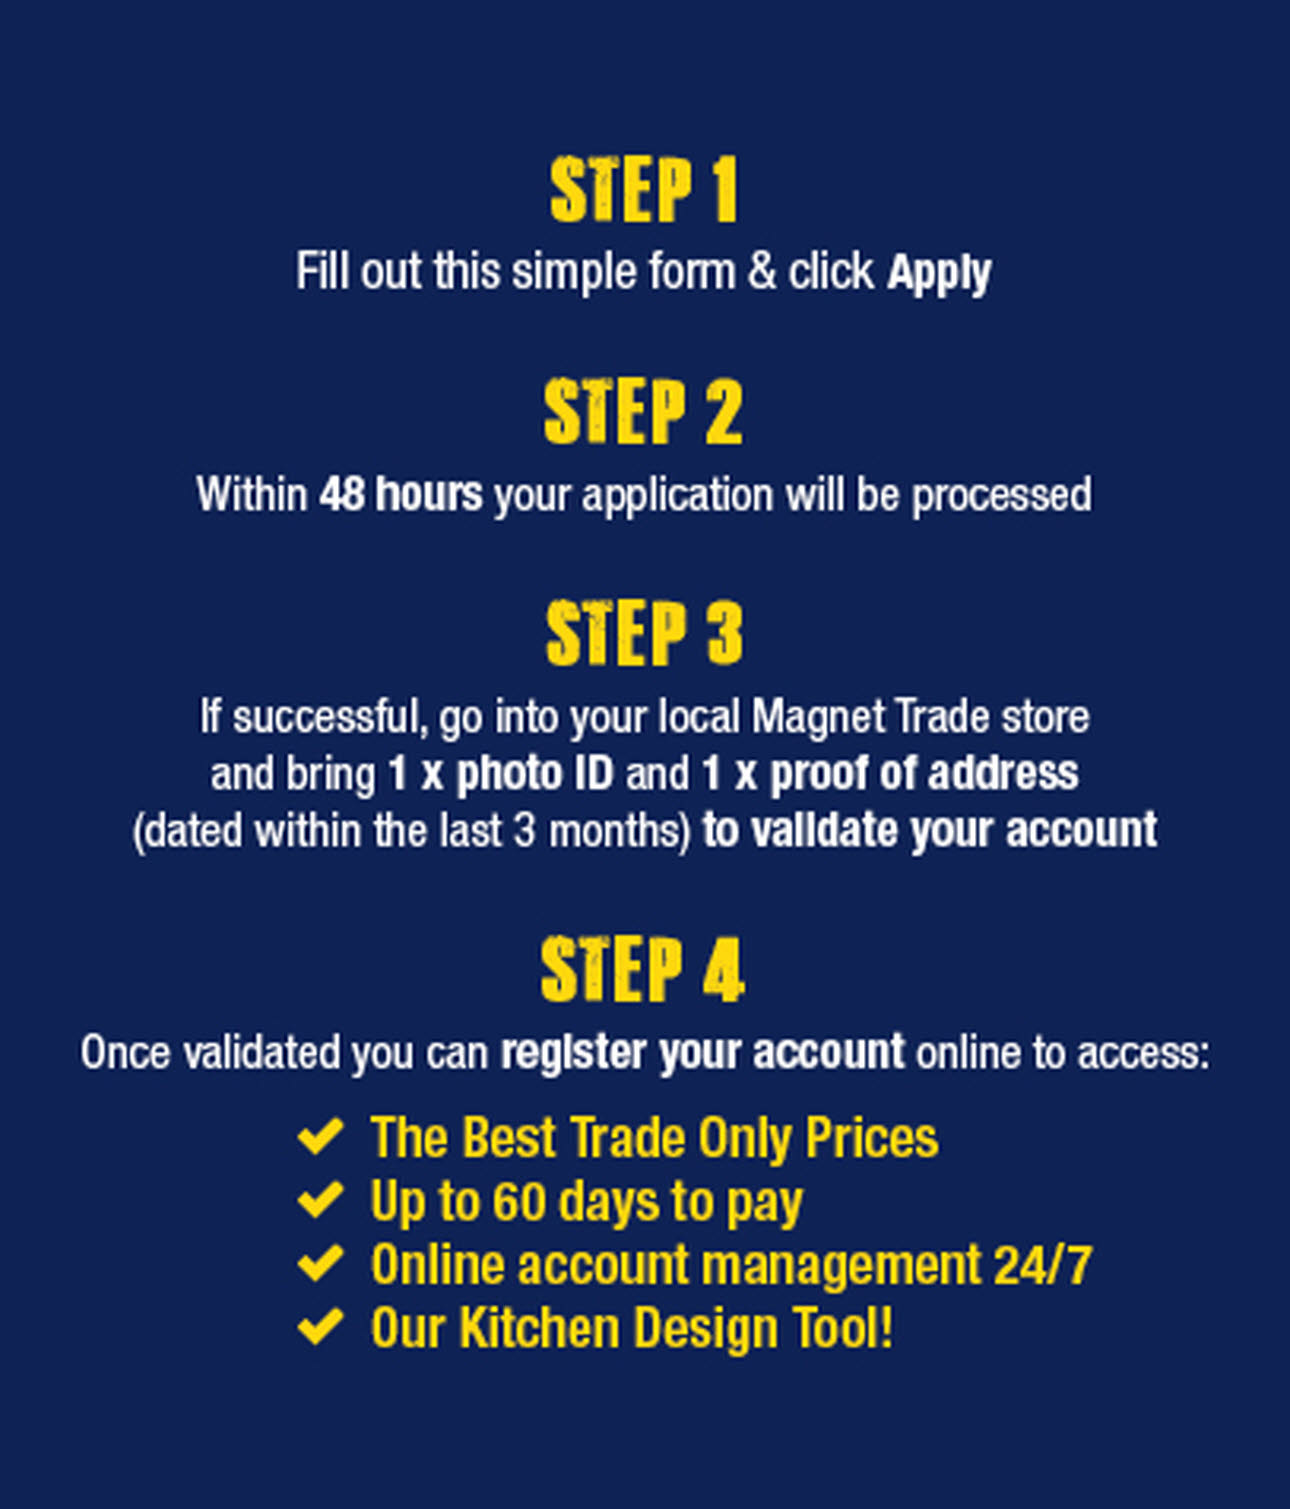 Details of the four step process for making a trade order with Magnet Trade